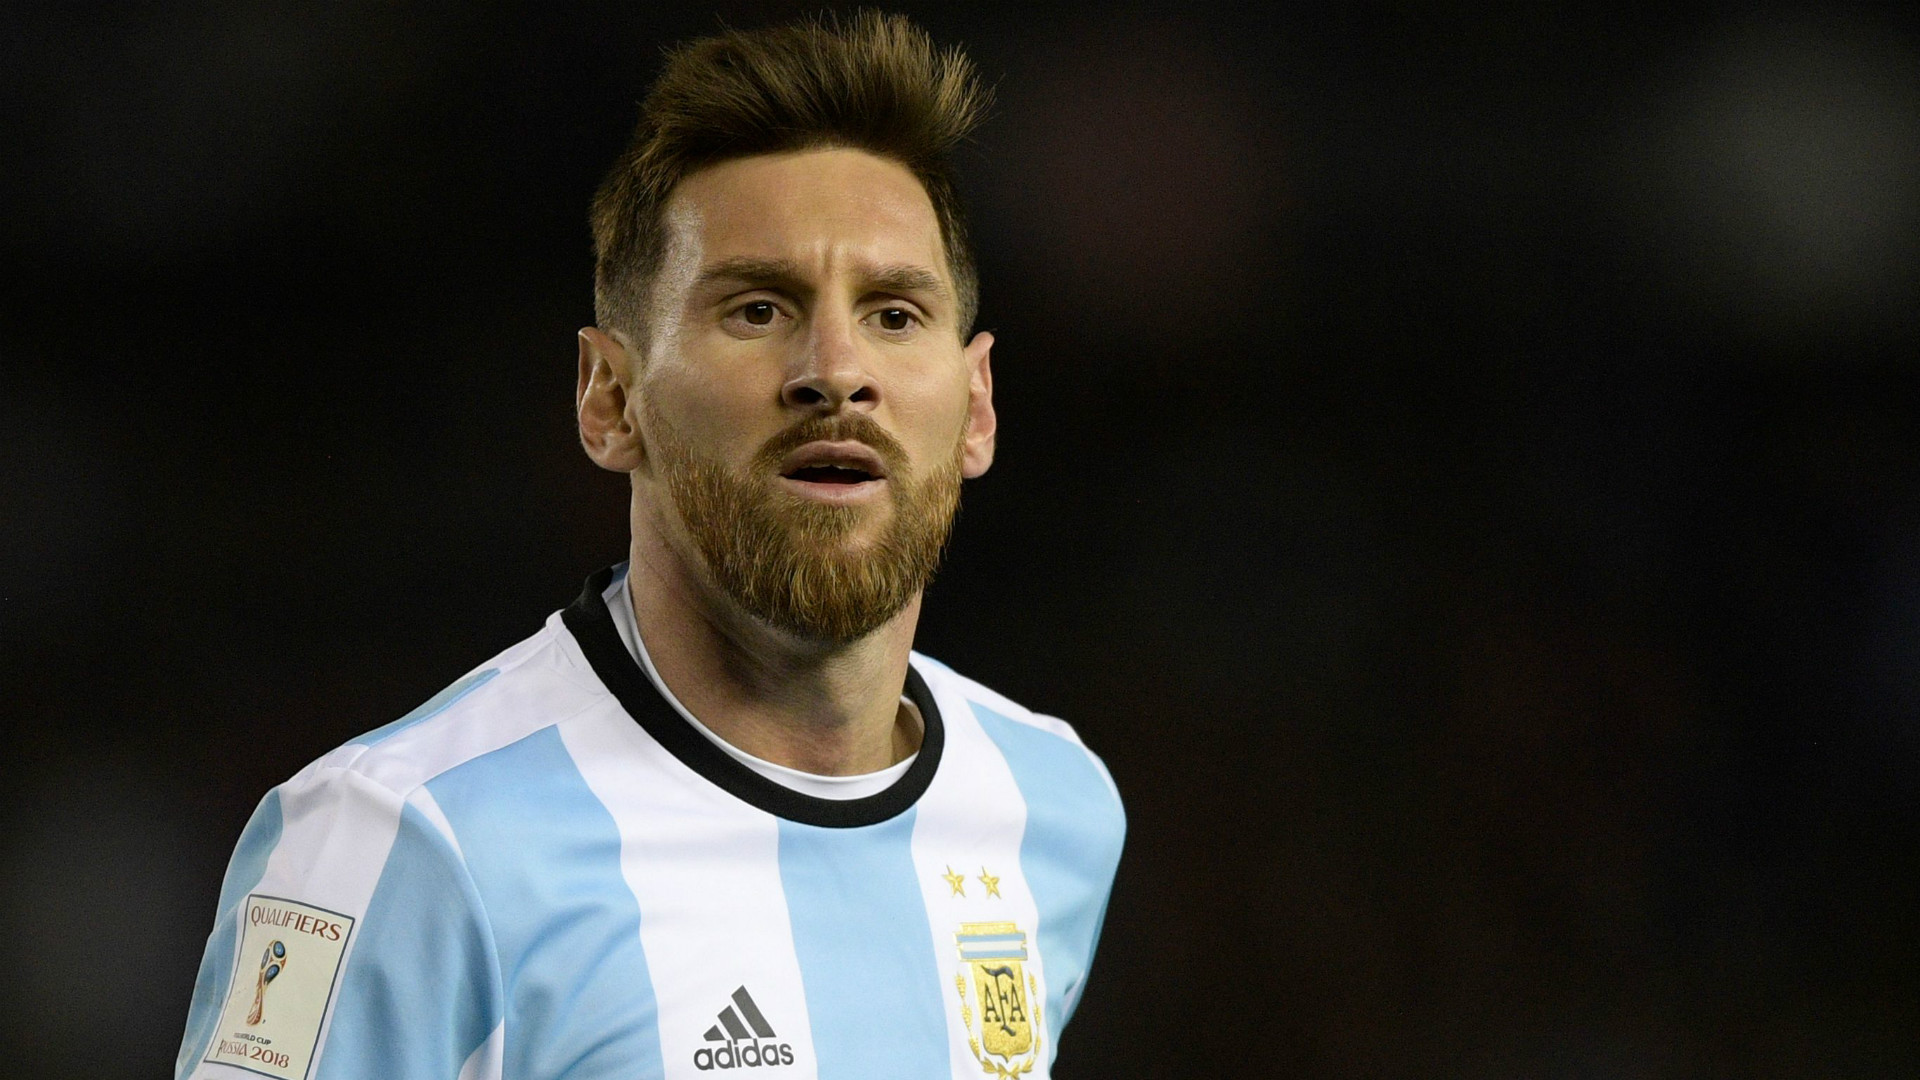 Lionel Messi-captained Argentina can still qualify, here's how